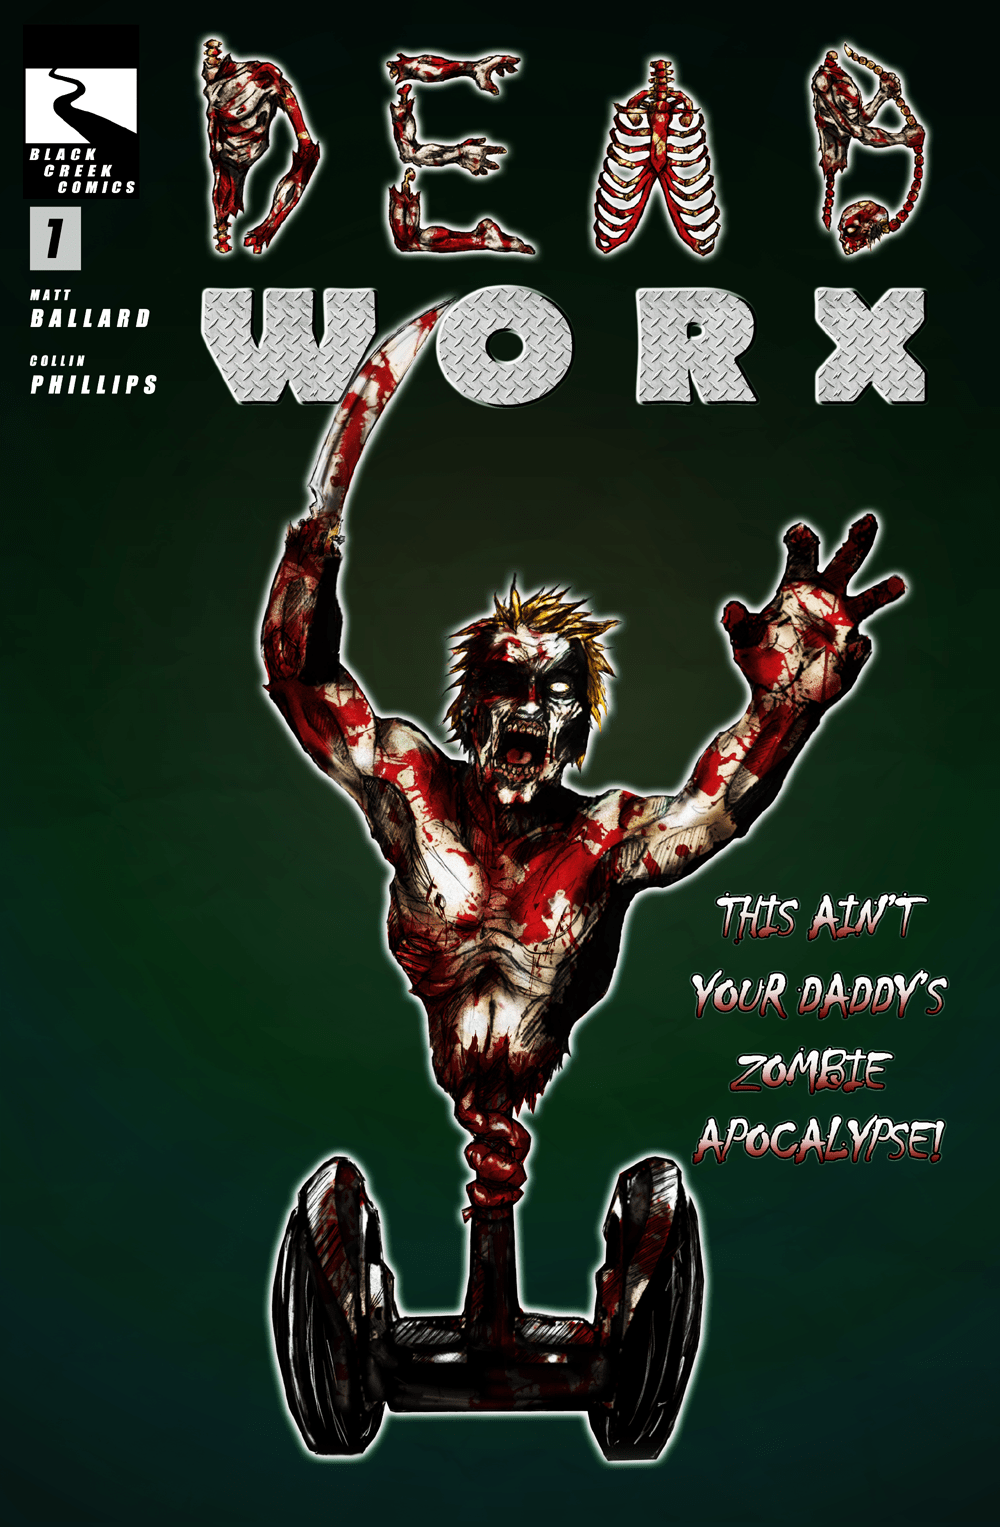 The most awesome zombie comic on the internet!